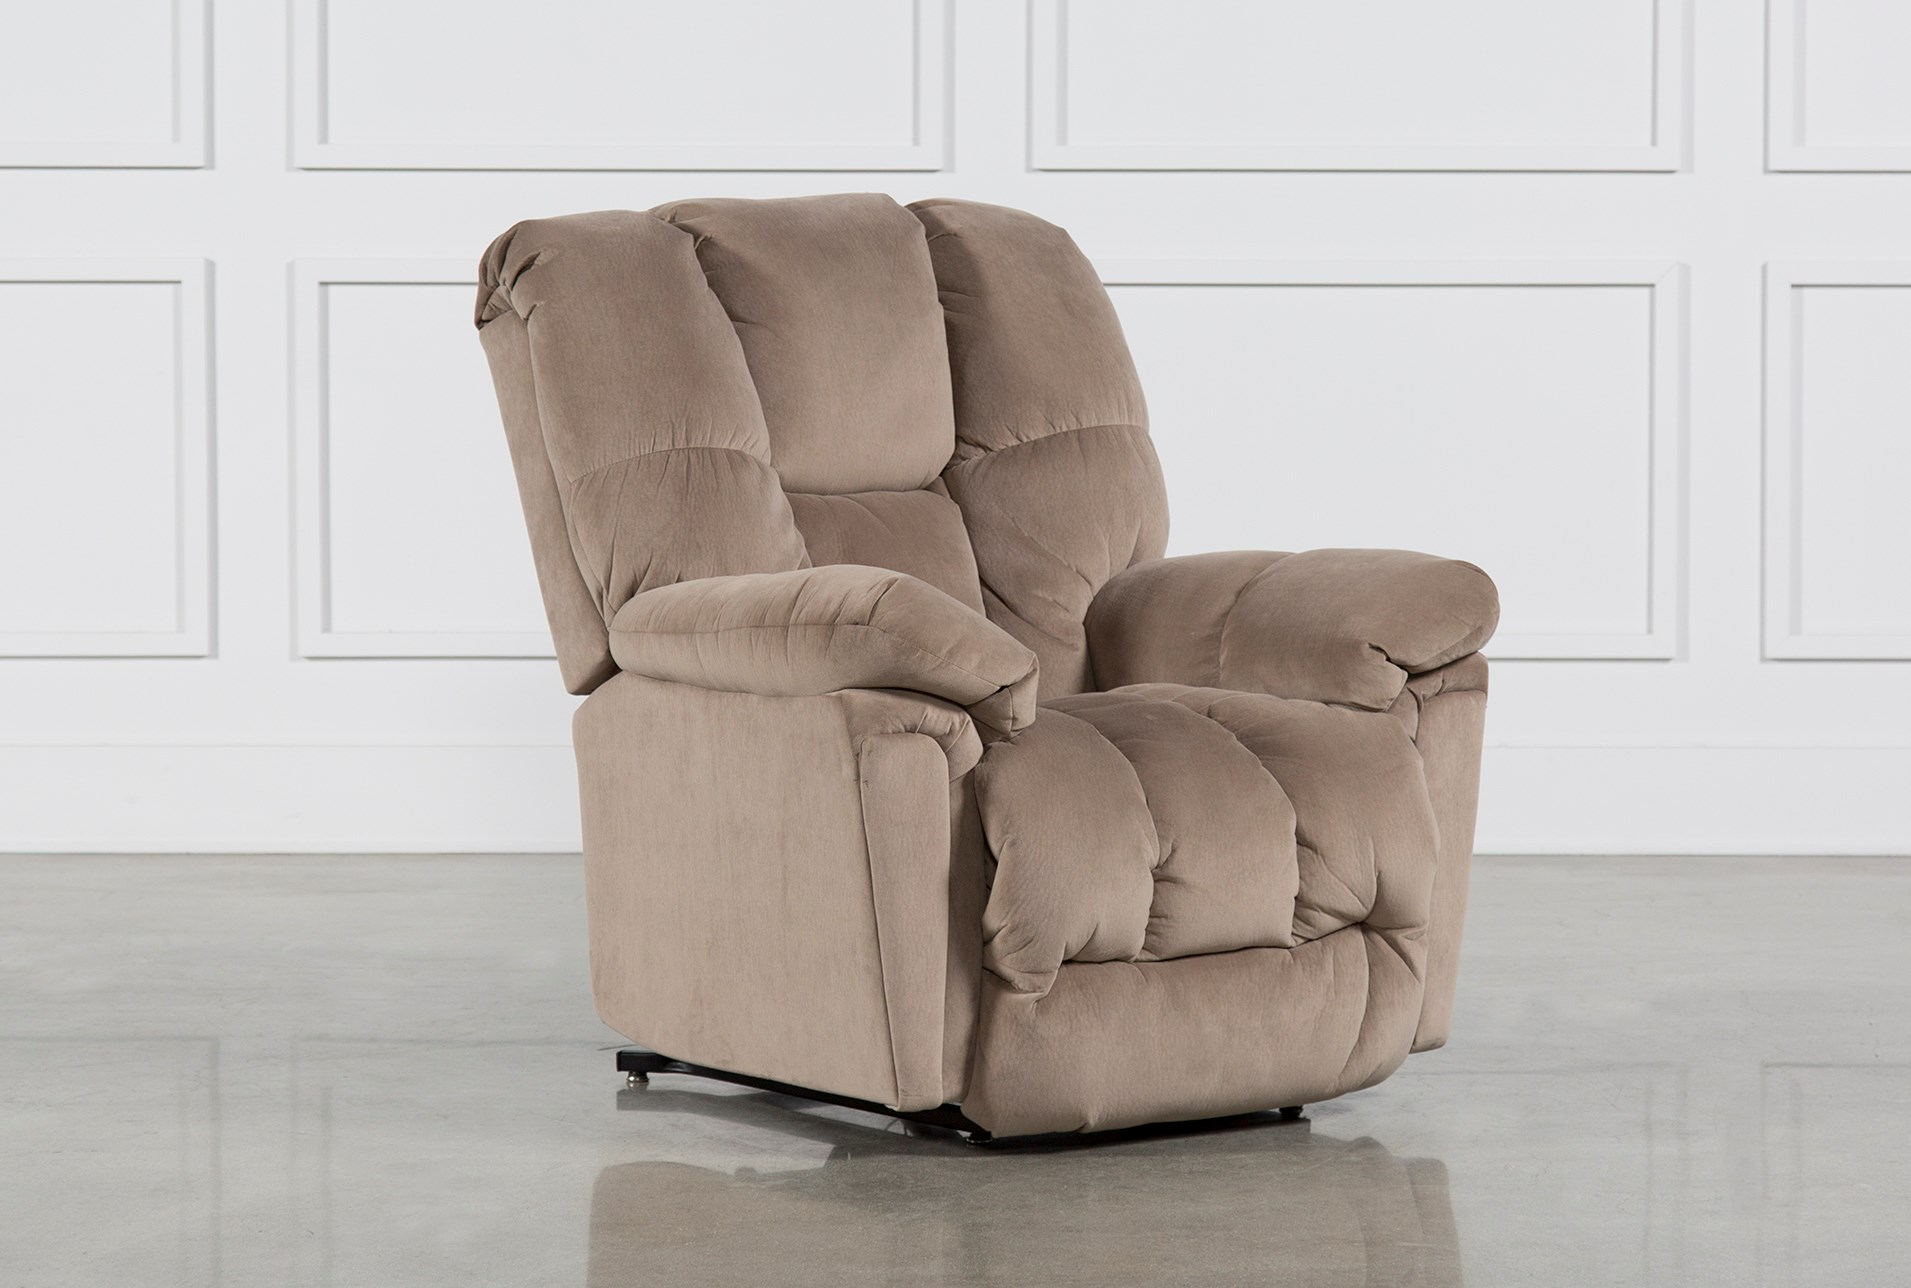 seating desks contemporary furniture office home chair recliner desk josh reclining chairs